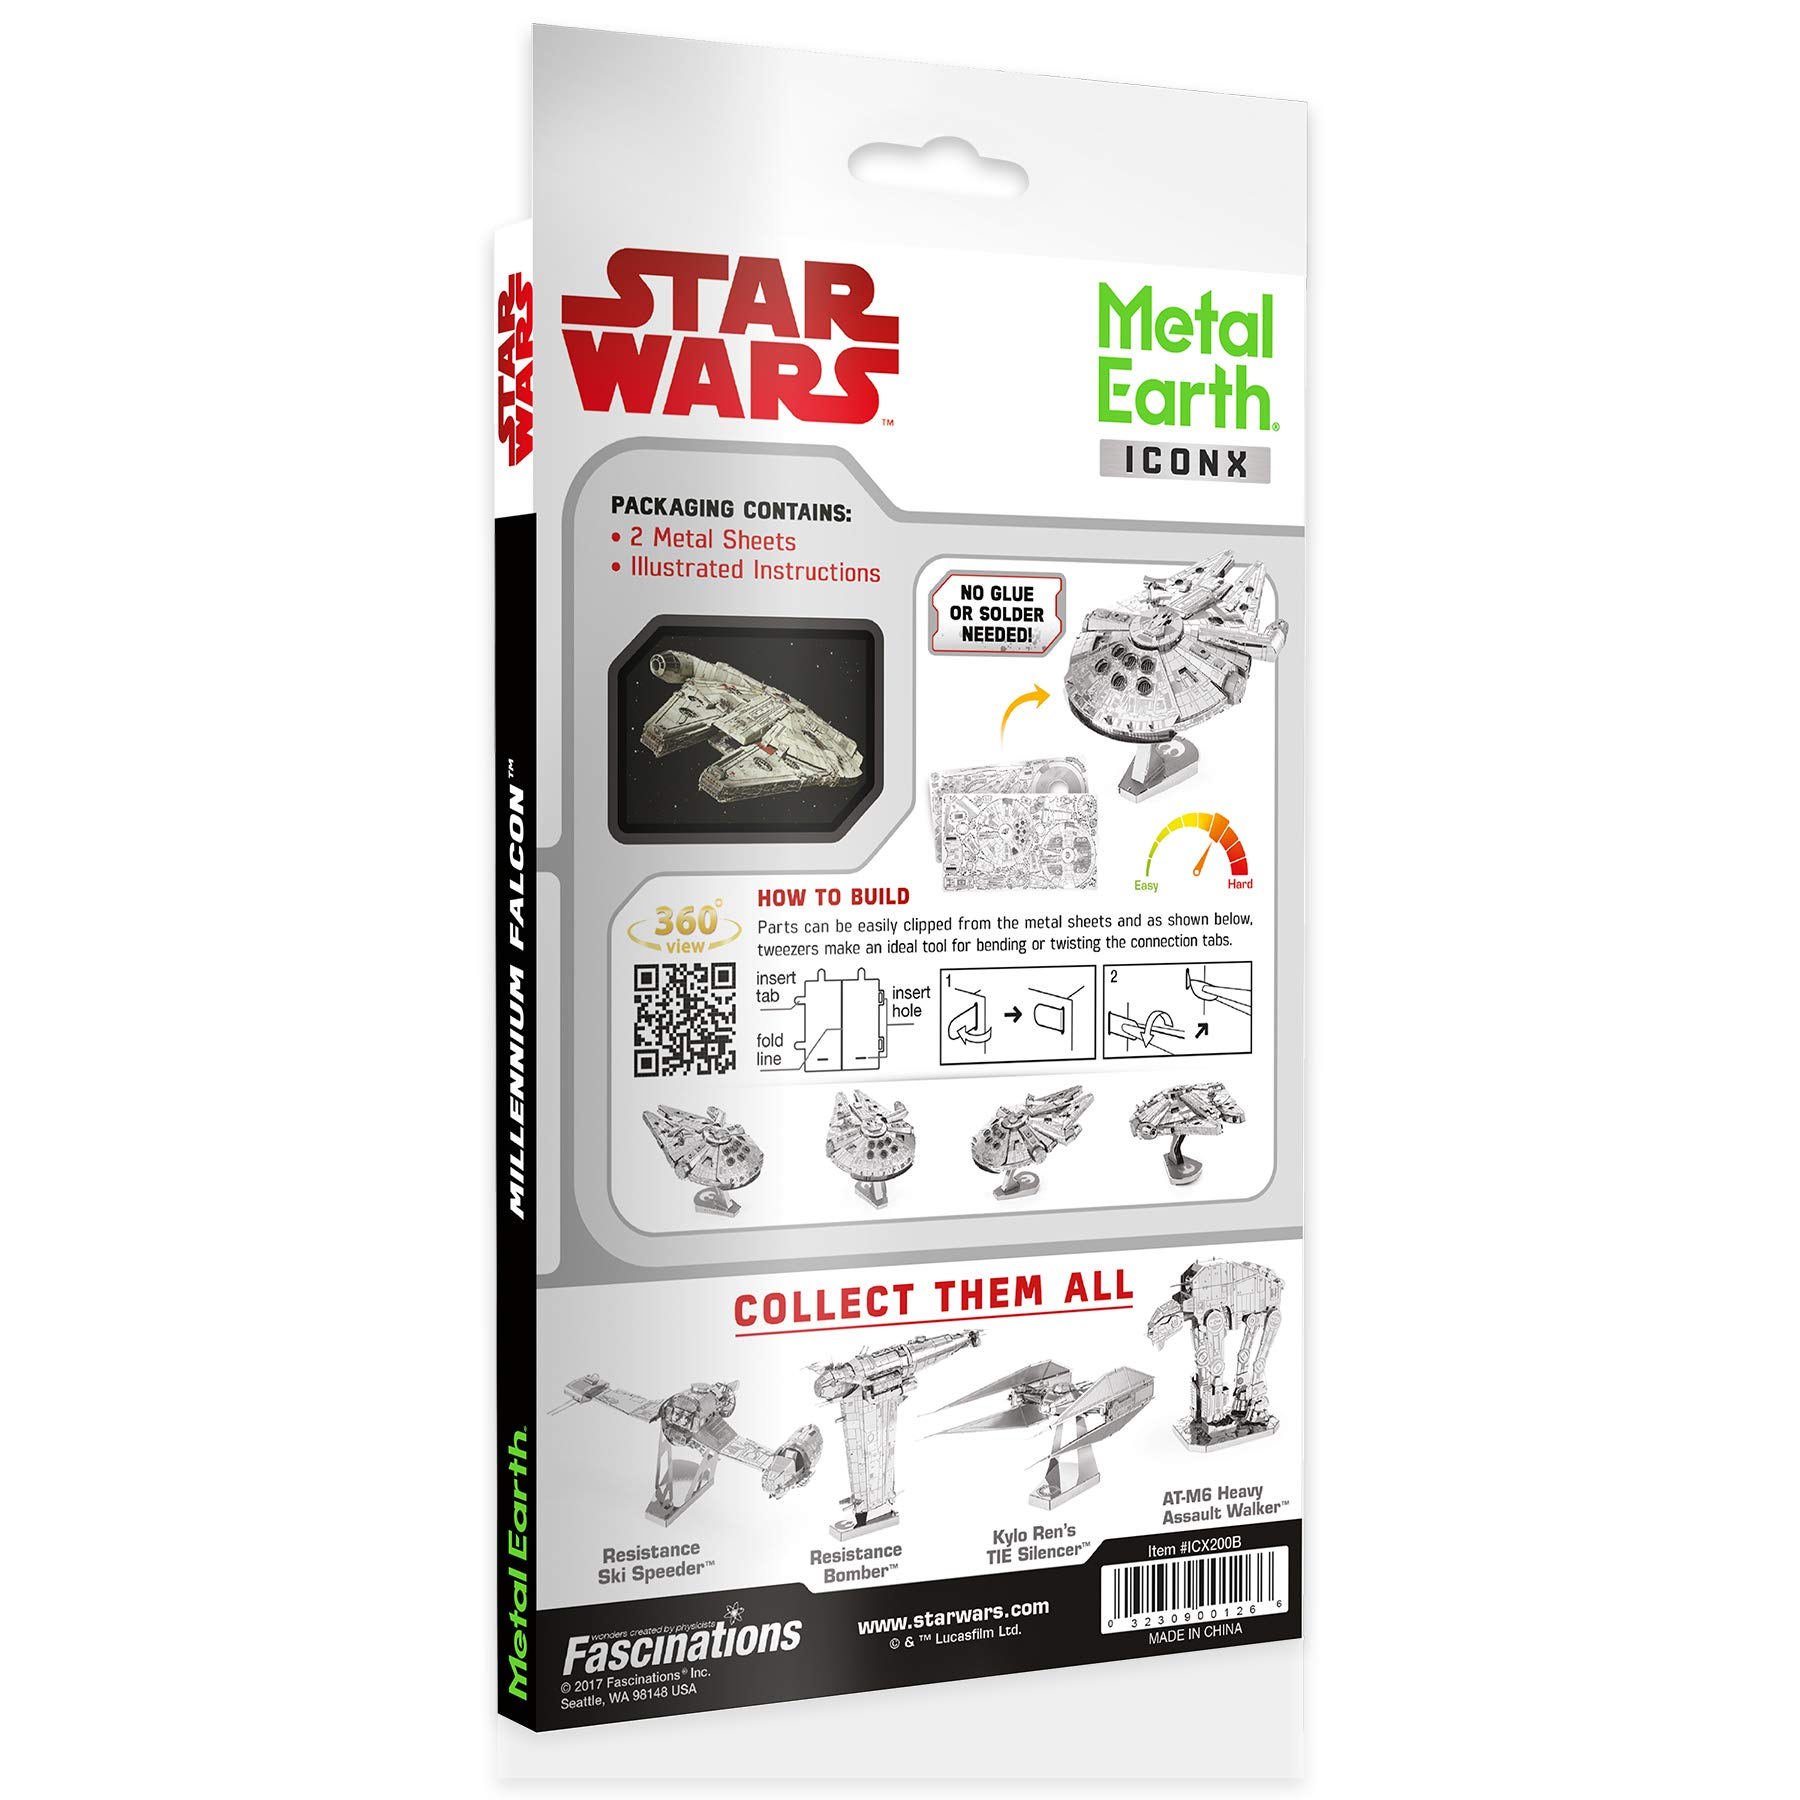 Metal Earth ICONX Star Wars Millennium Falcon Premium Series 3D Metal Model Kit by Fascinations (Image #3)